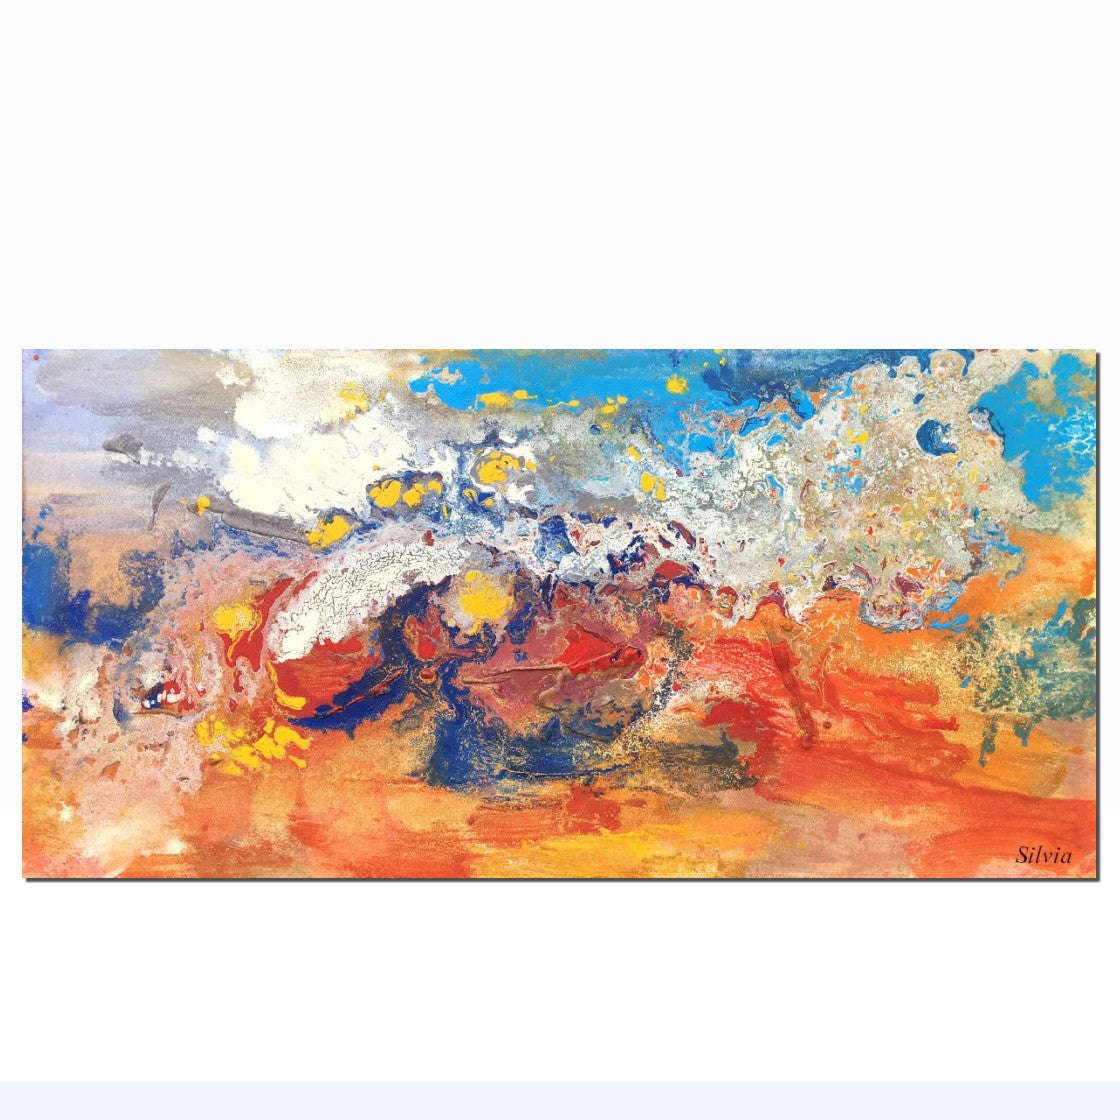 Abstract Painting, Abstract Canvas Art, Oil Painting, Canvas Painting, Abstract Art, Home Art, Contemporary Art, Original Art, Abstract Landscape - Art Painting Canvas